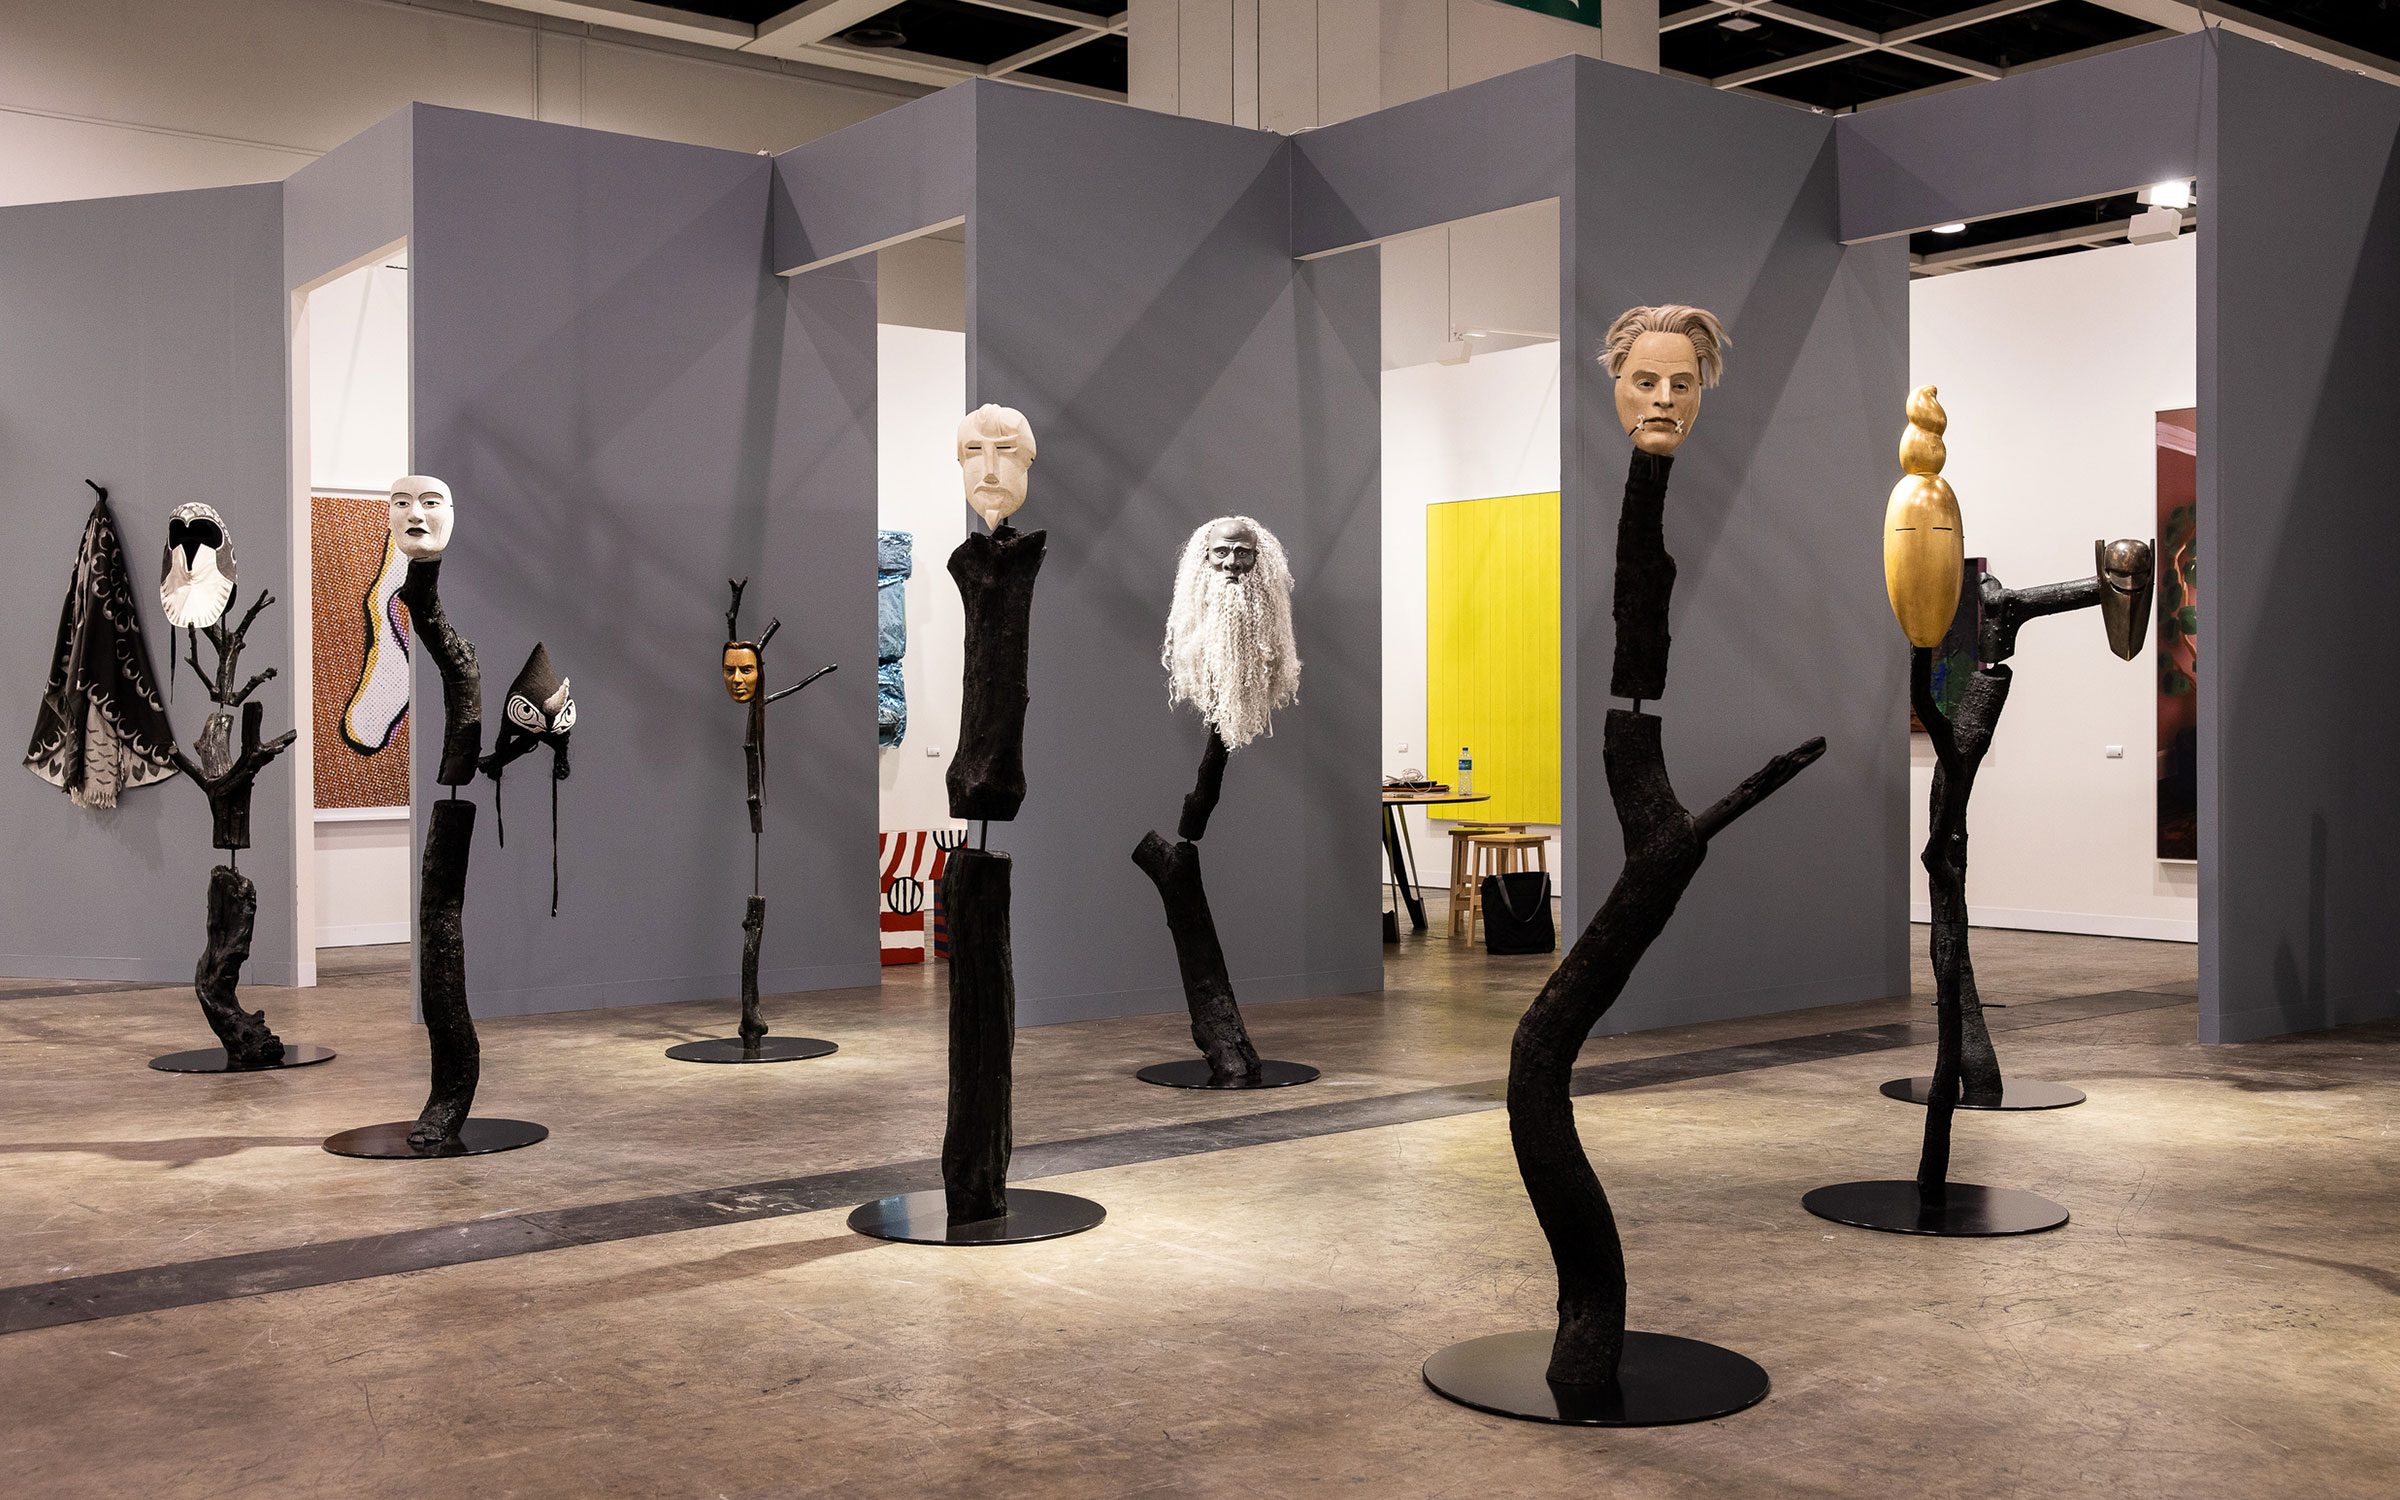 Eight sculptures in a room on display for Art Basel Hong Kong